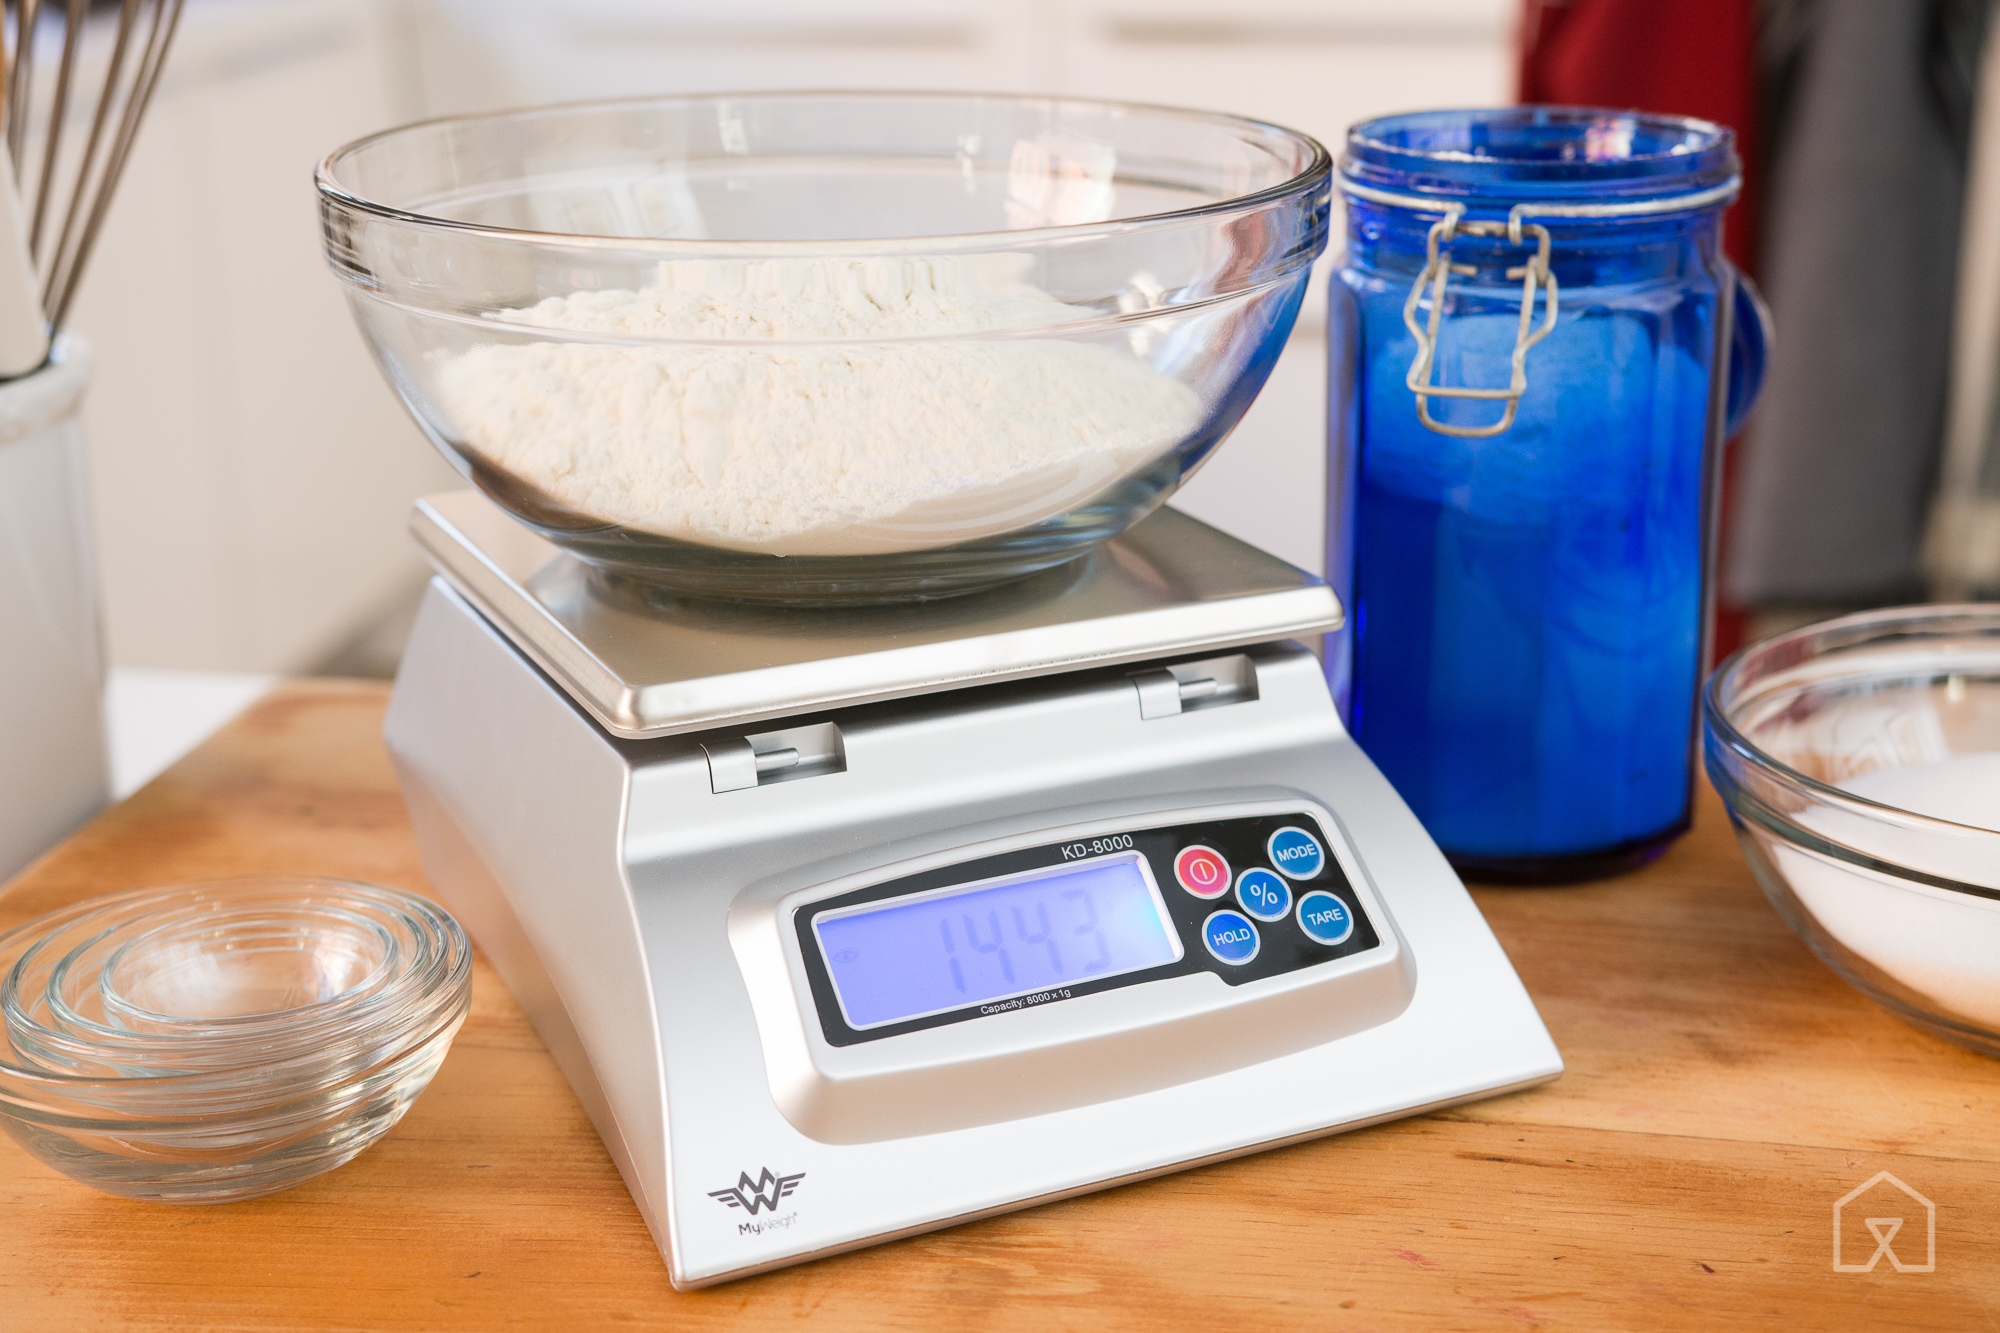 With Its Ability To Display In Baker S Percentages The My Weigh Kd8000 Is Best For Advanced Home Bakers And Pros Photo Michael Hession